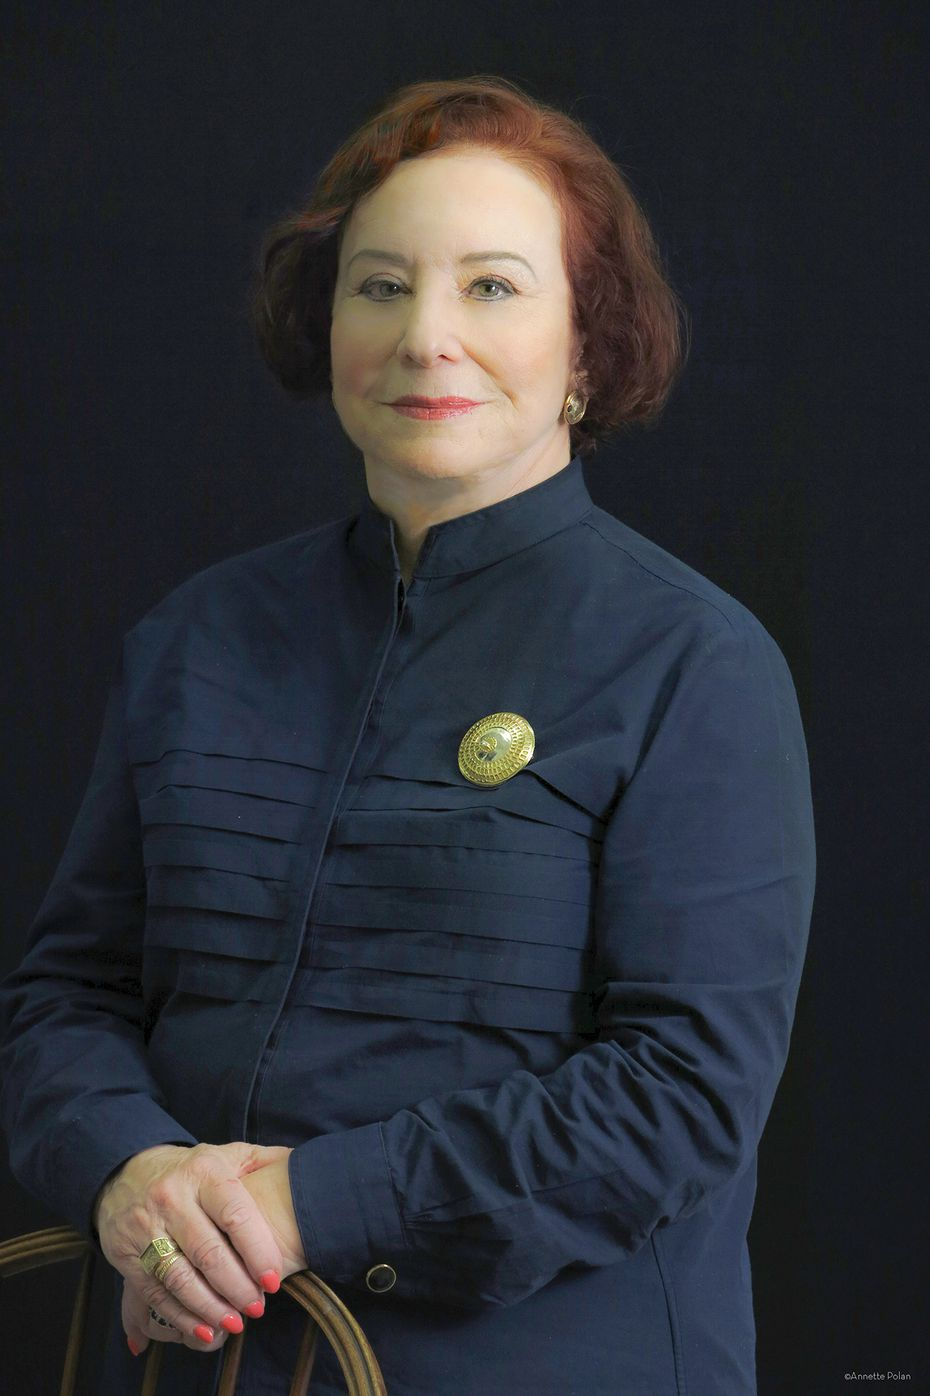 Dr. Florence Haseltine, a scientist at UT-Arlington, poses for a portrait. Haseltine leveraged her personal connections, built on 27 years of working at the national level, to make sure that the North Texas Genome Center has COVID-19 testing supplies.